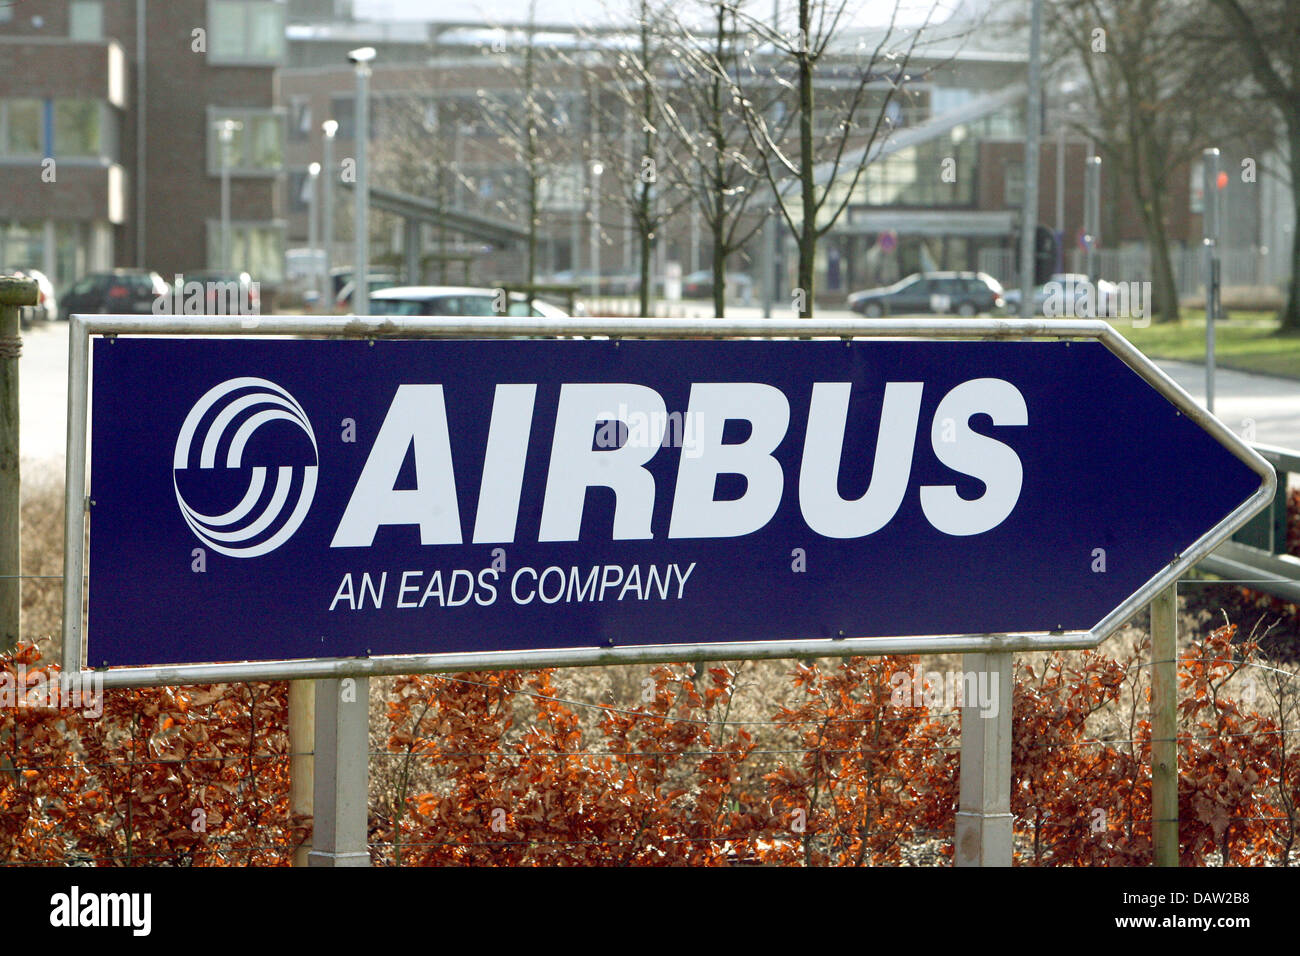 A direction sign points to the Airbus plant Stade, germany, Monday, 05 February 2007. The recapitalization concept - Stock Image